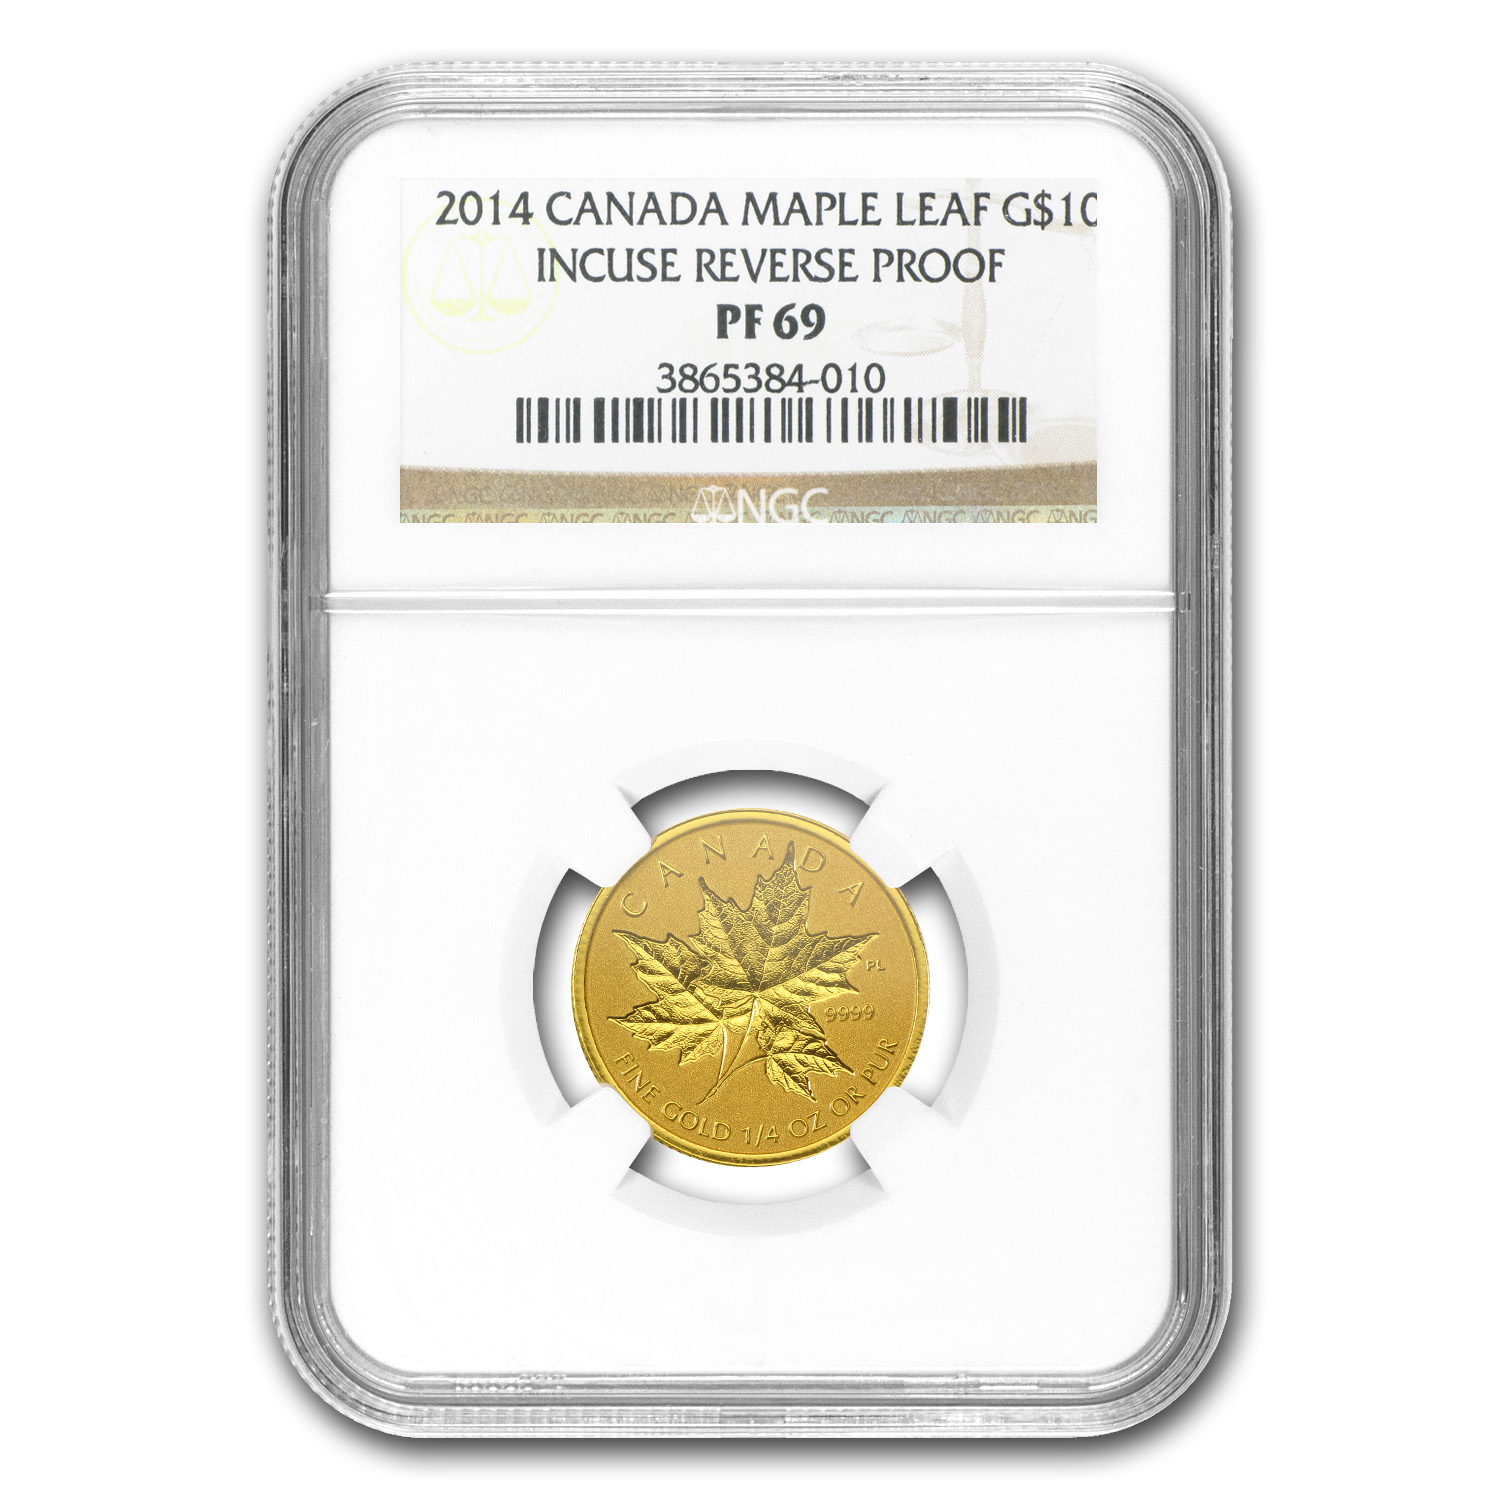 2014 Canada 1/4 oz Reverse Proof Incuse Gold Maple Leaf PF-69 NGC